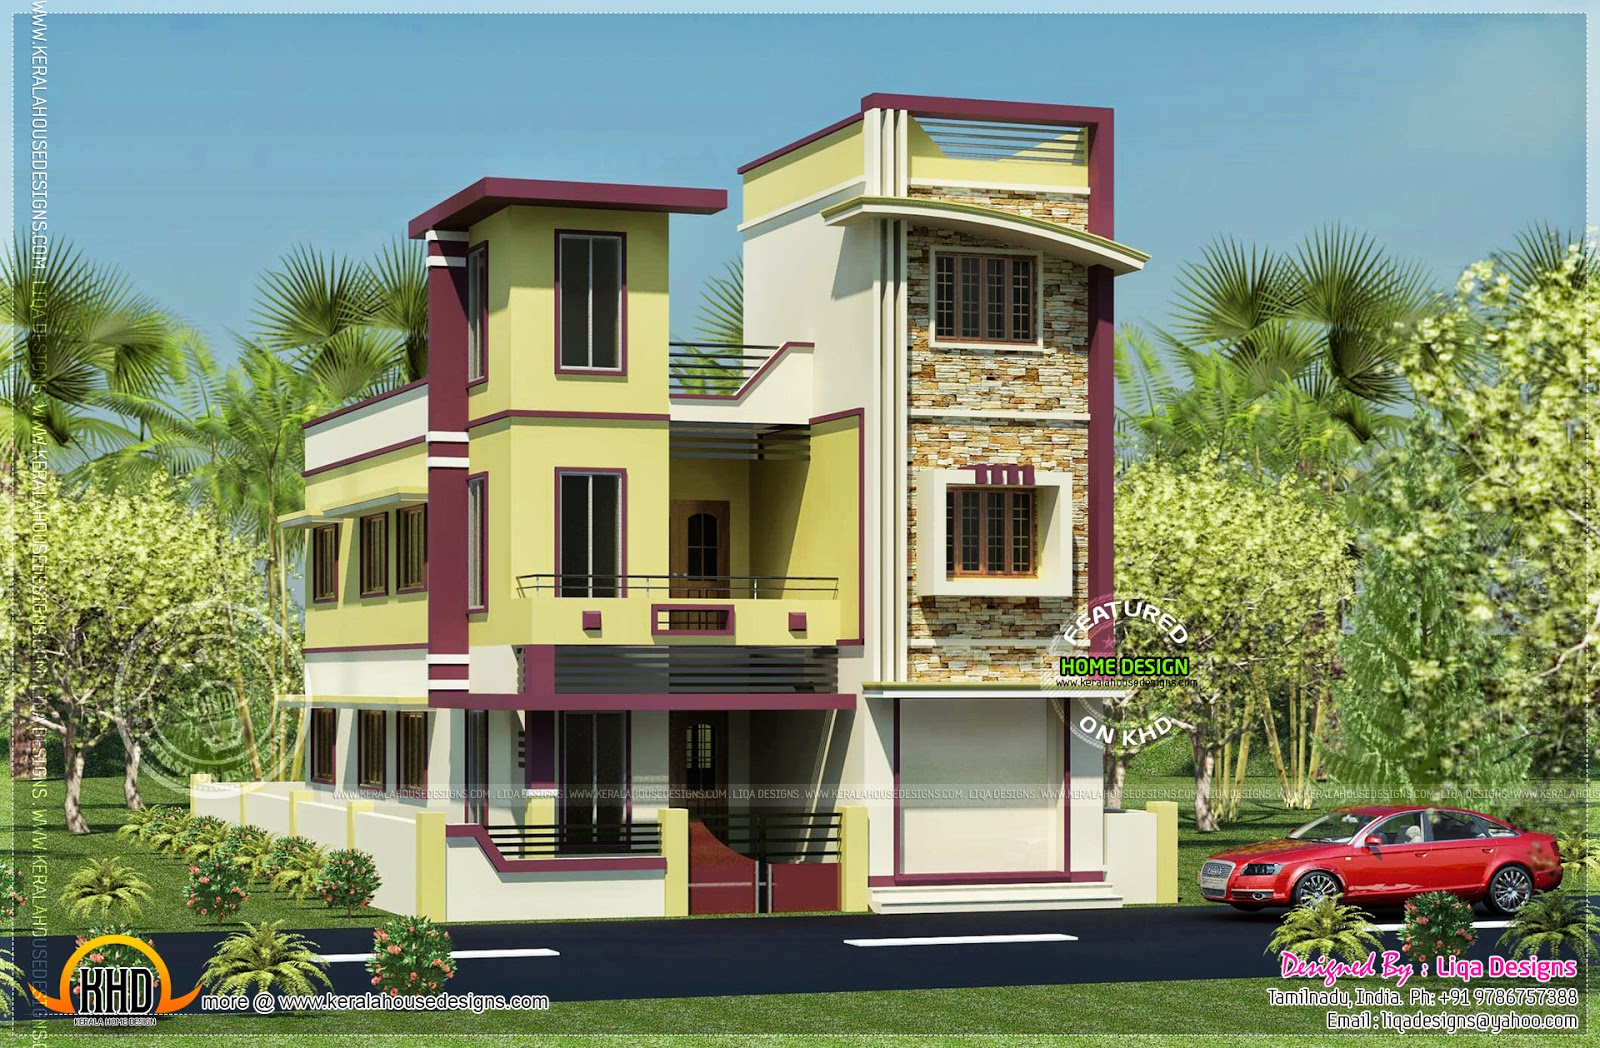 2470 sq ft 3 storied tamilnadu house rendering kerala for Tamilnadu house designs photos